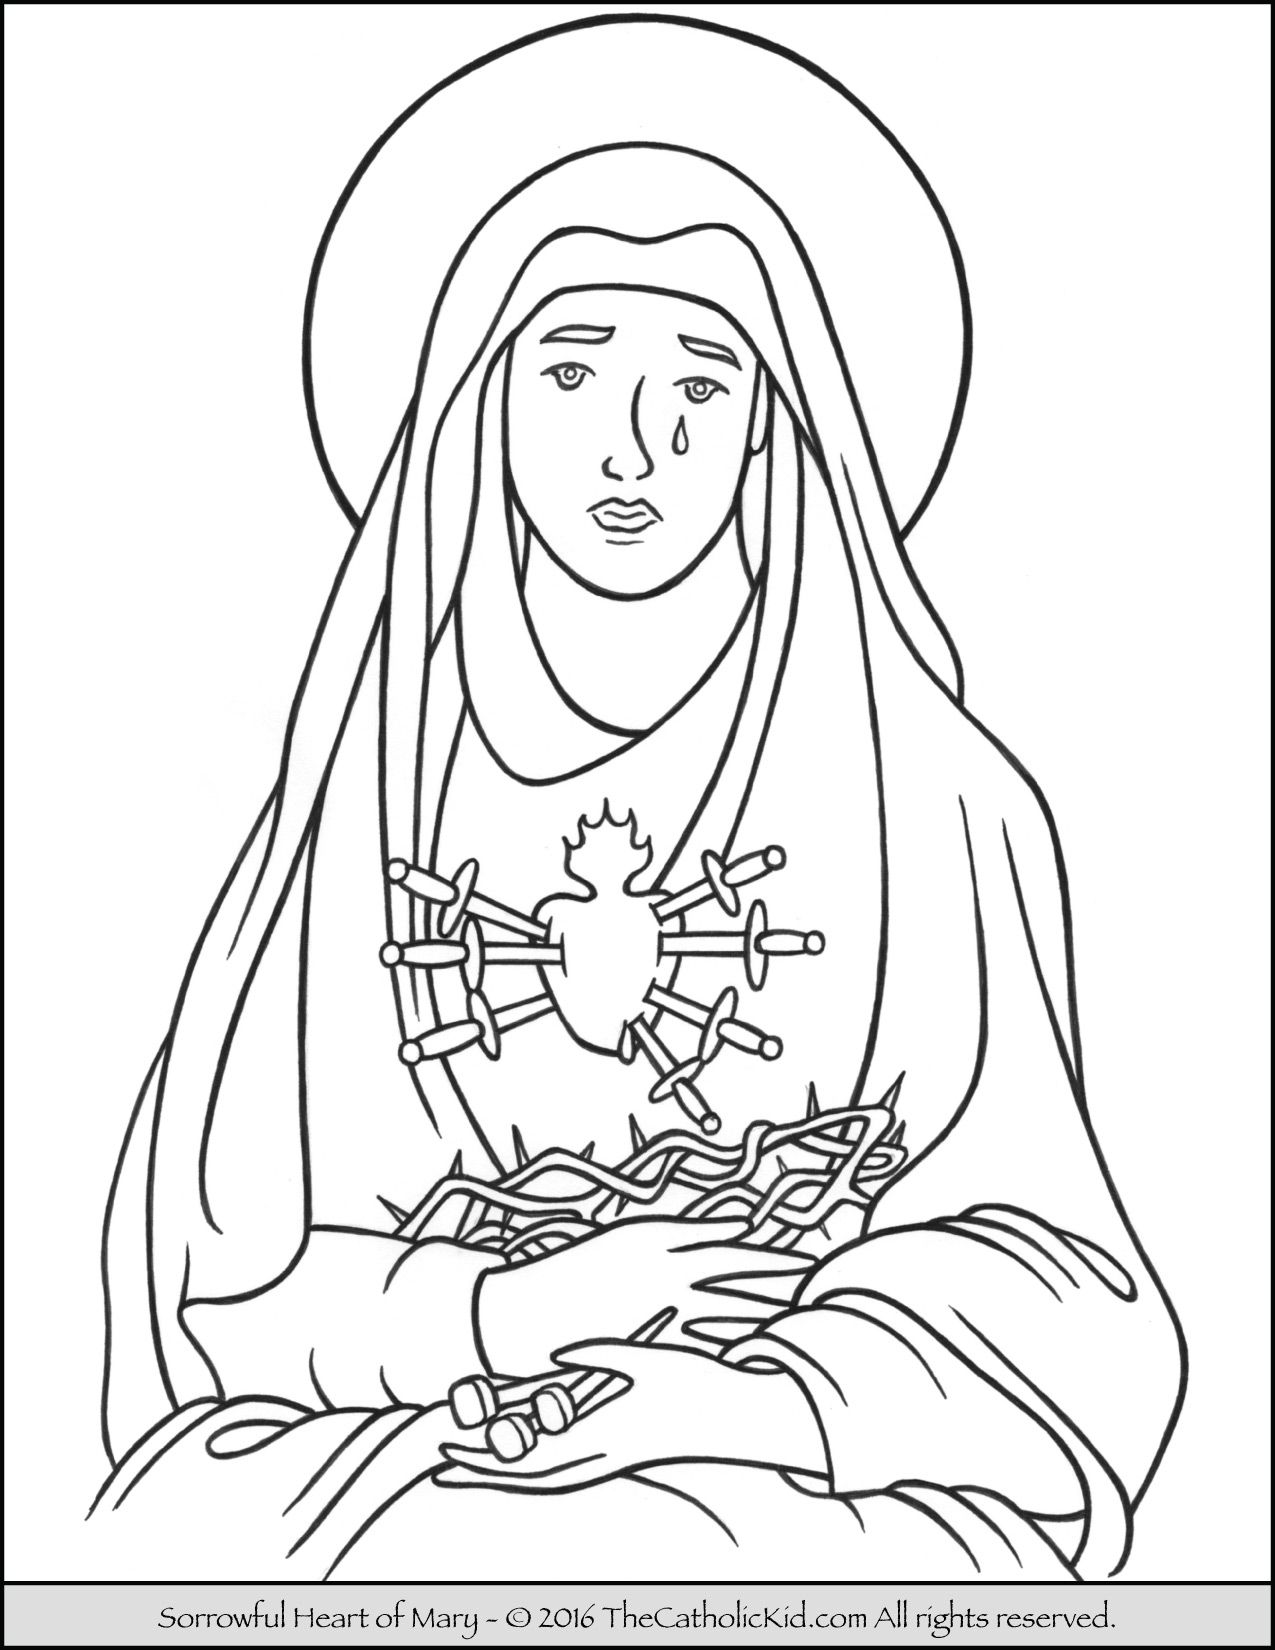 Sorrowful Heart of Mary Coloring Page | Catholic Coloring Pages for ...